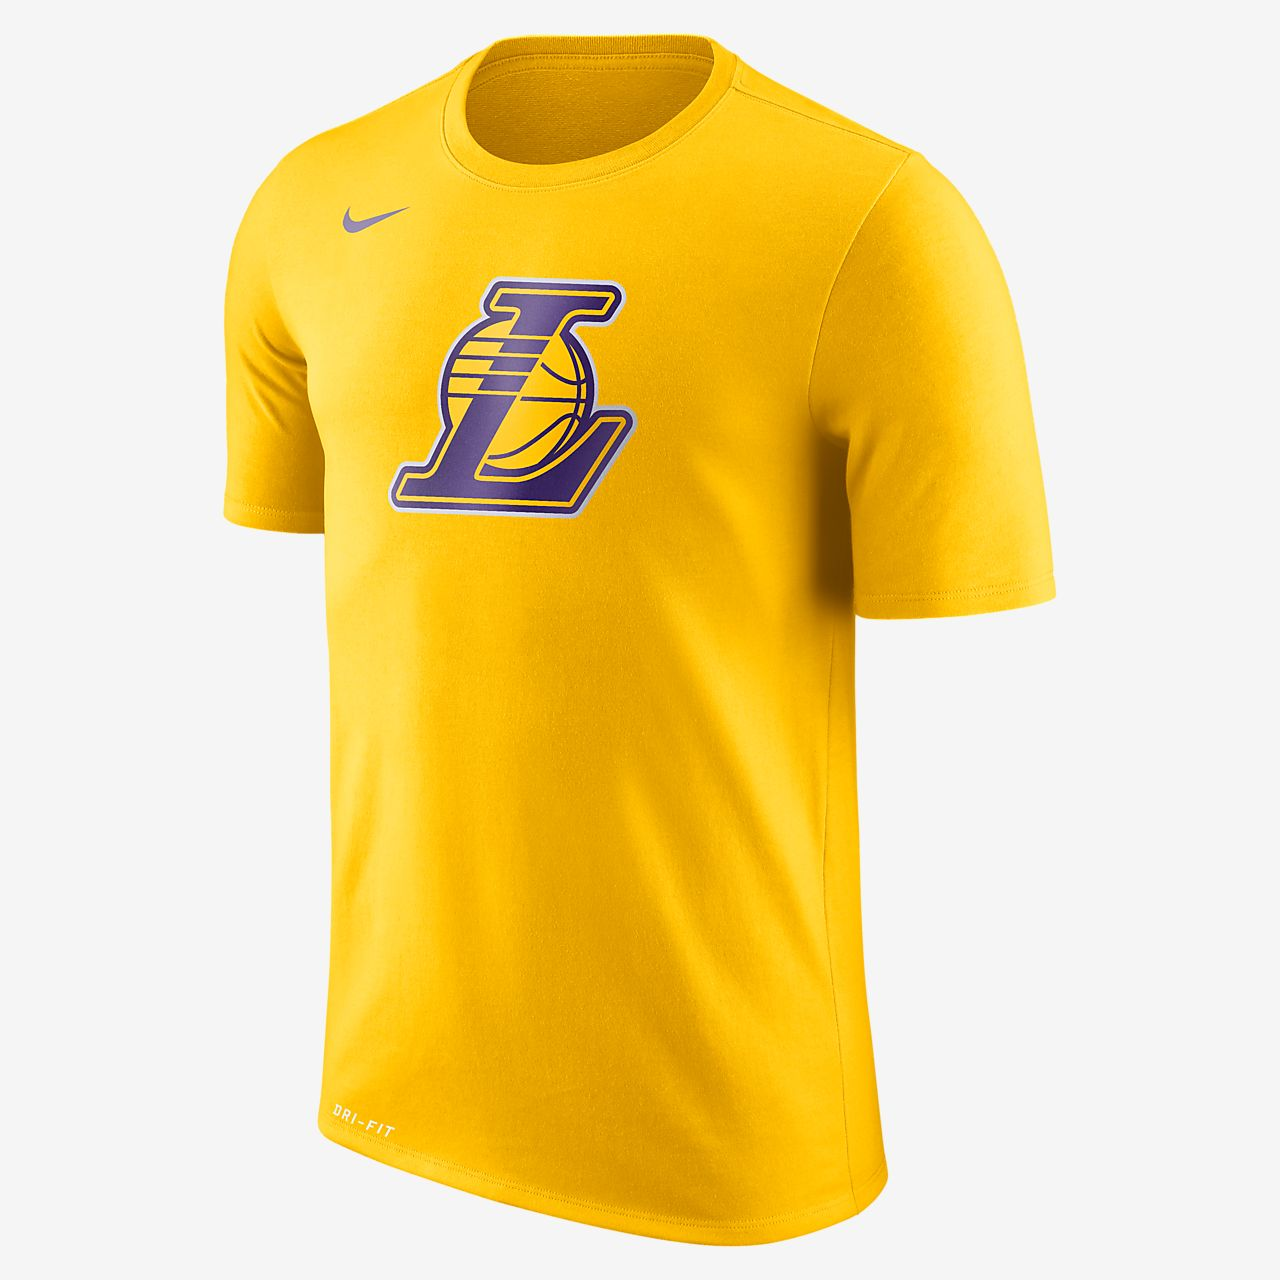 Los angeles lakers nike dry logo mens nba t shirt nike gb los angeles lakers nike dry logo mens nba t shirt voltagebd Image collections